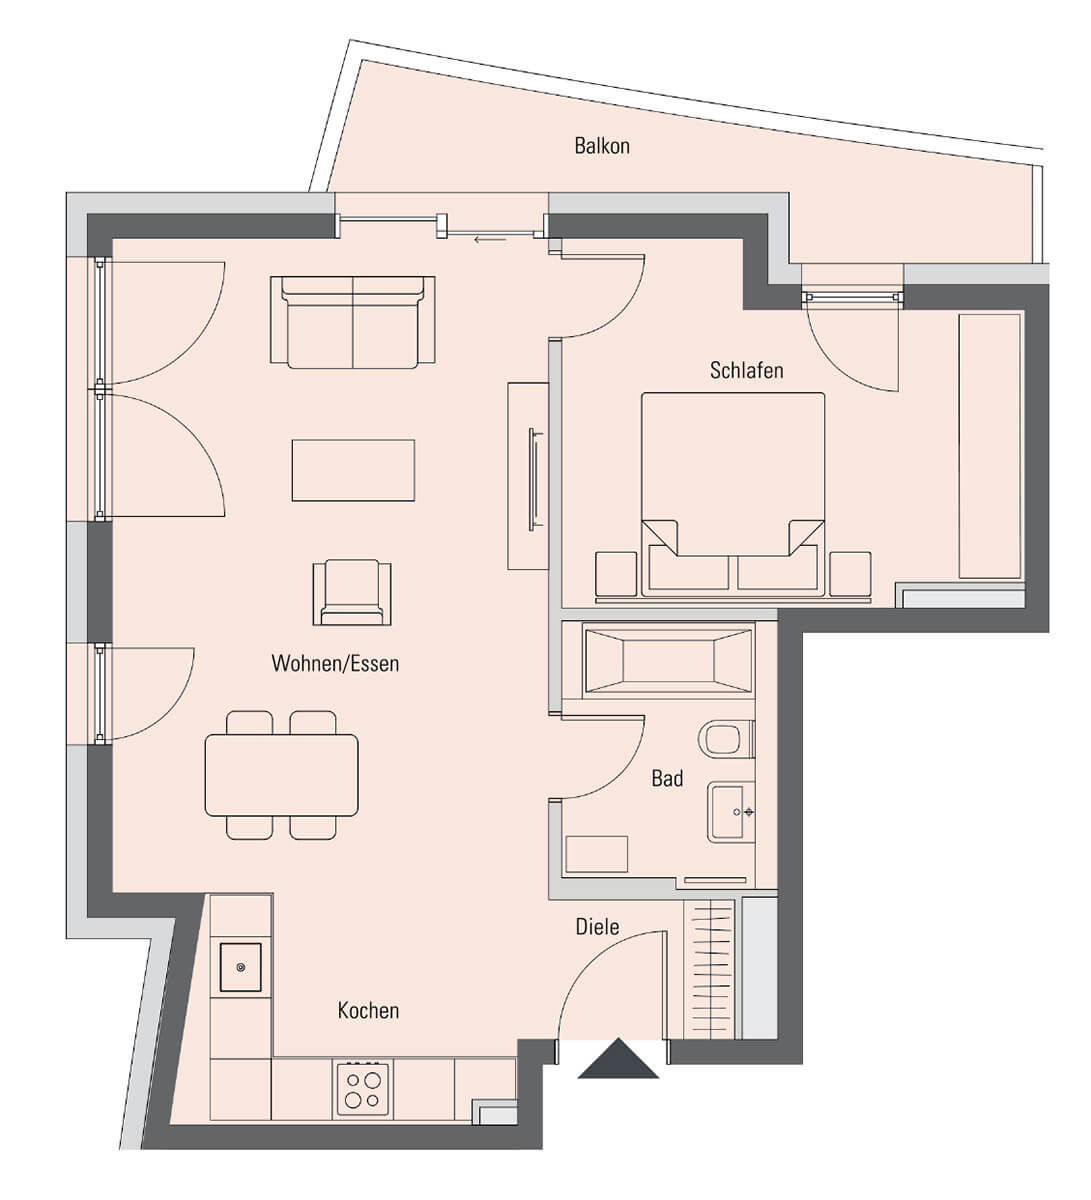 Apartment 4.2.9, 2 Rooms, 61.6 m²